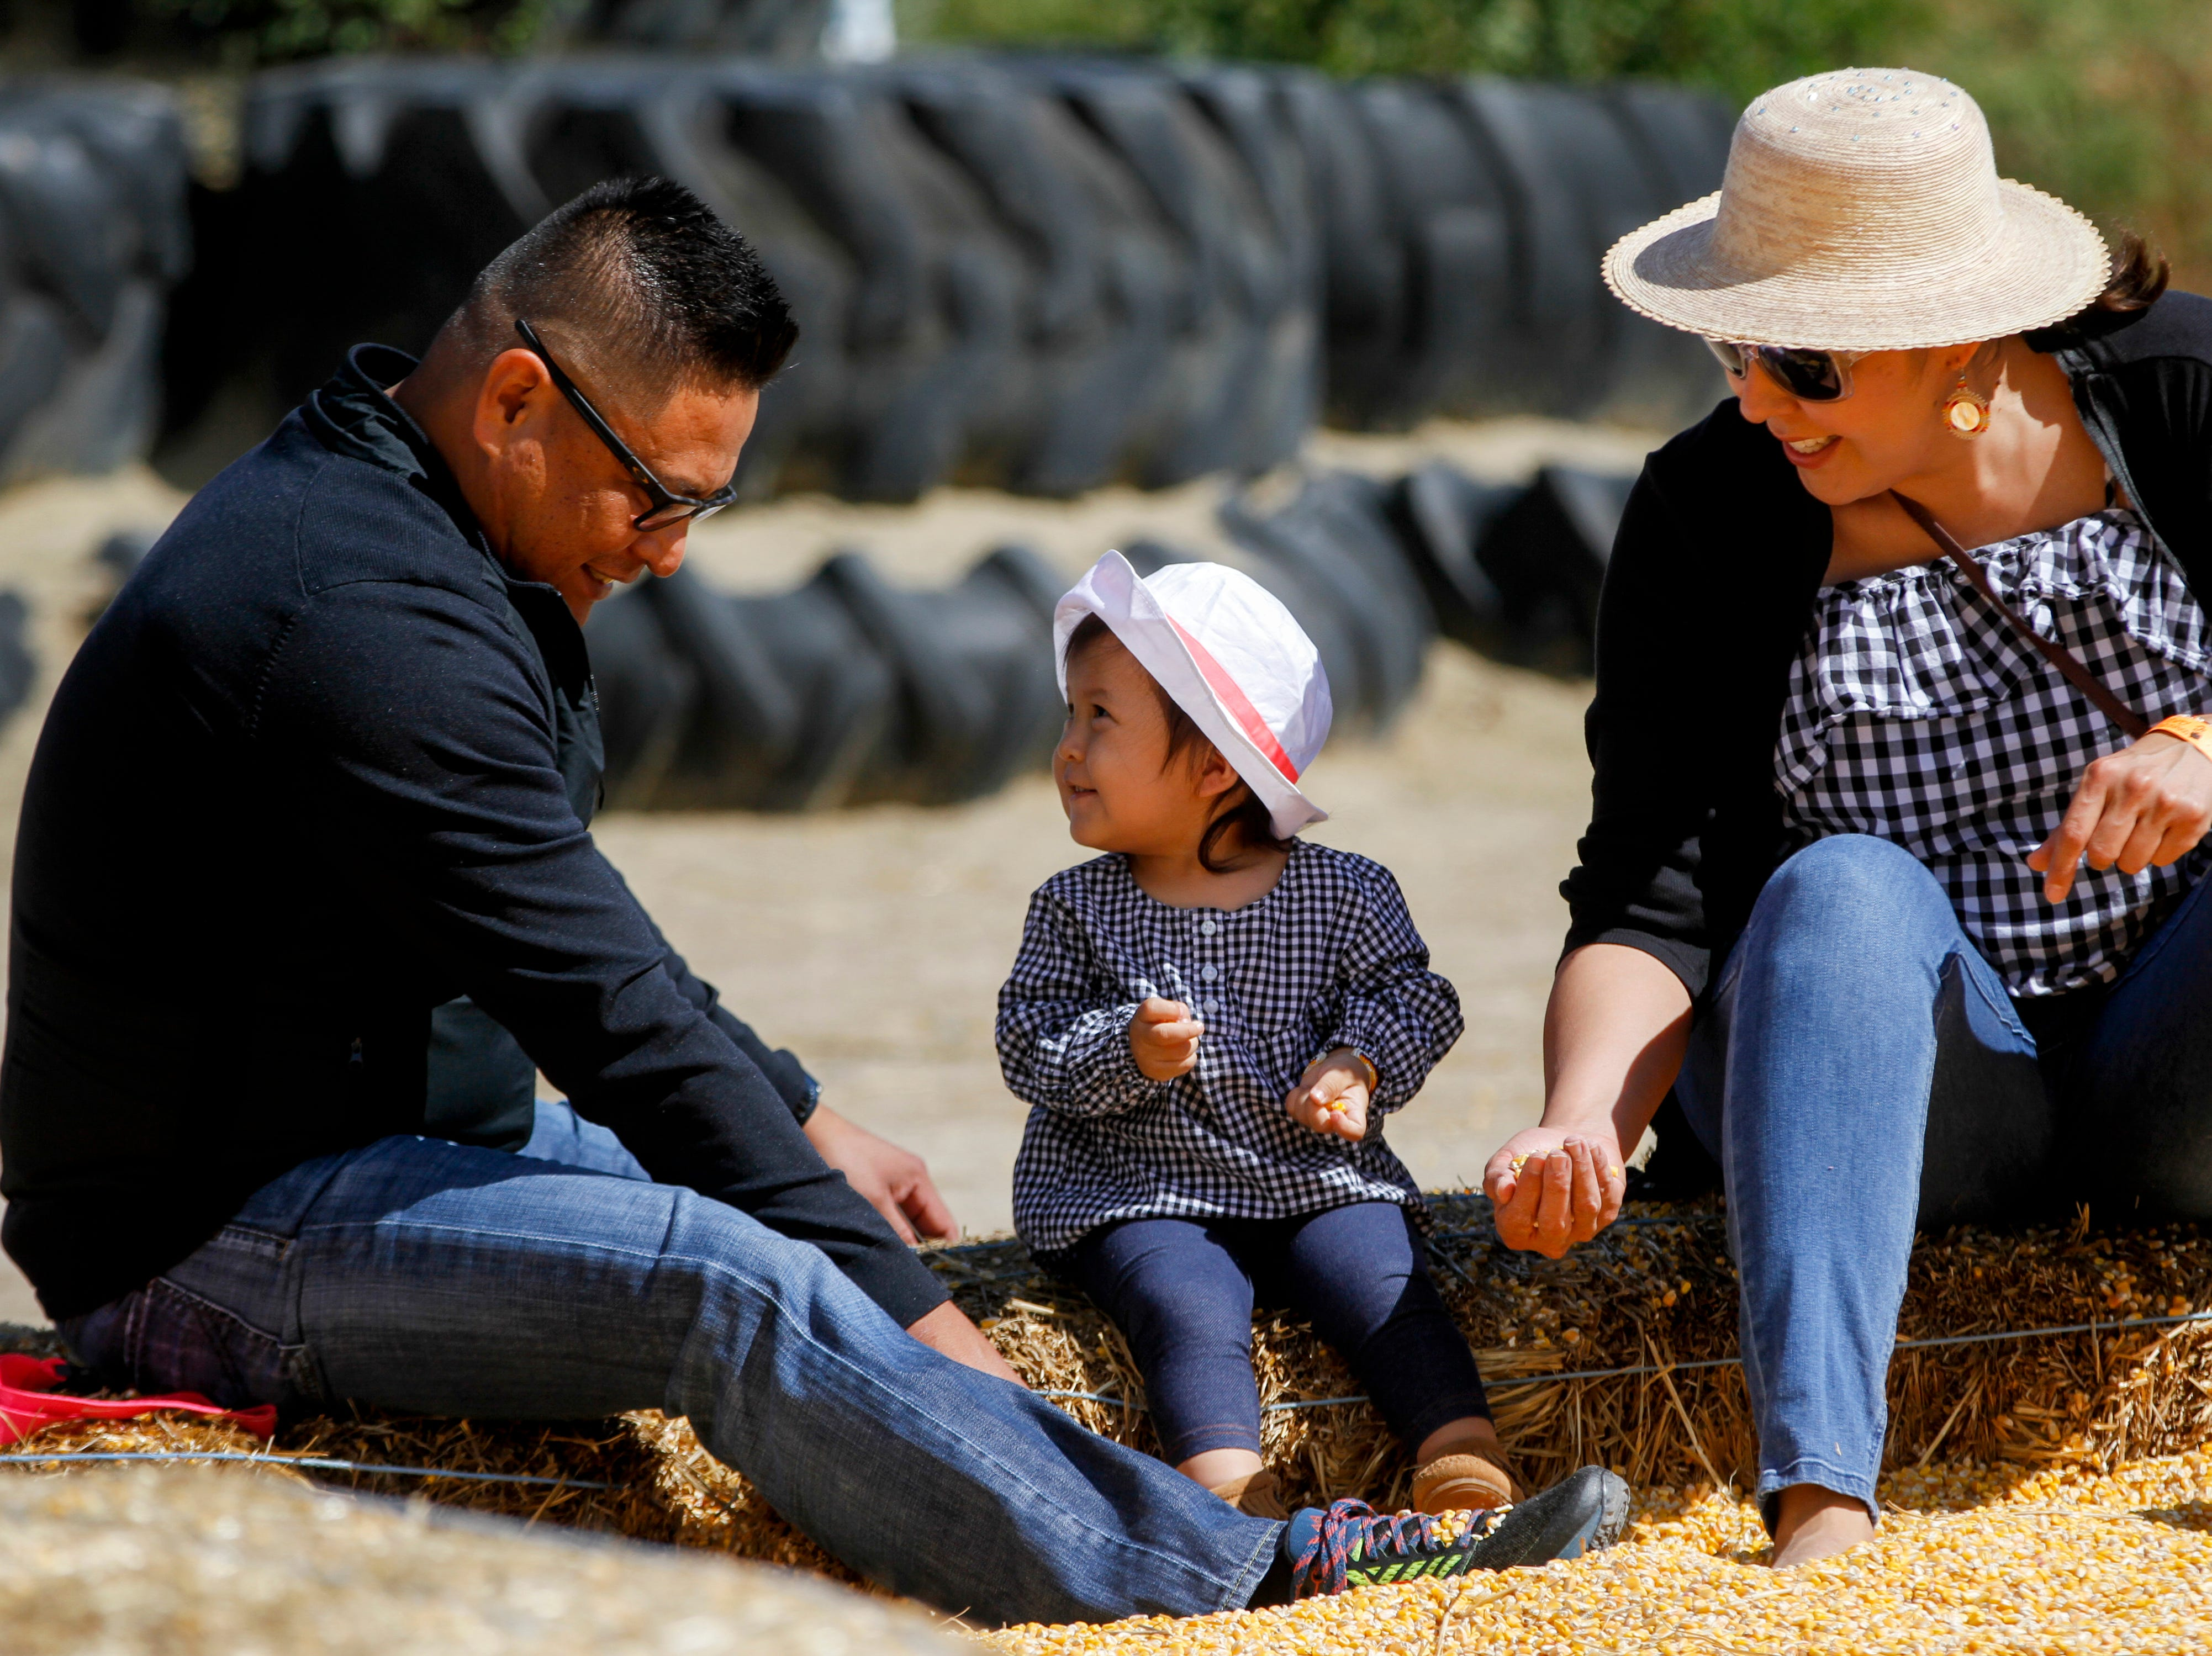 Tansa Bitsie, center, plays with her parents Thurman Bitsie, left, and Lori Todacheene, all for  Friday, Oct. 5, 2018 inside a corn pit at Sutherland Farms in Aztec.